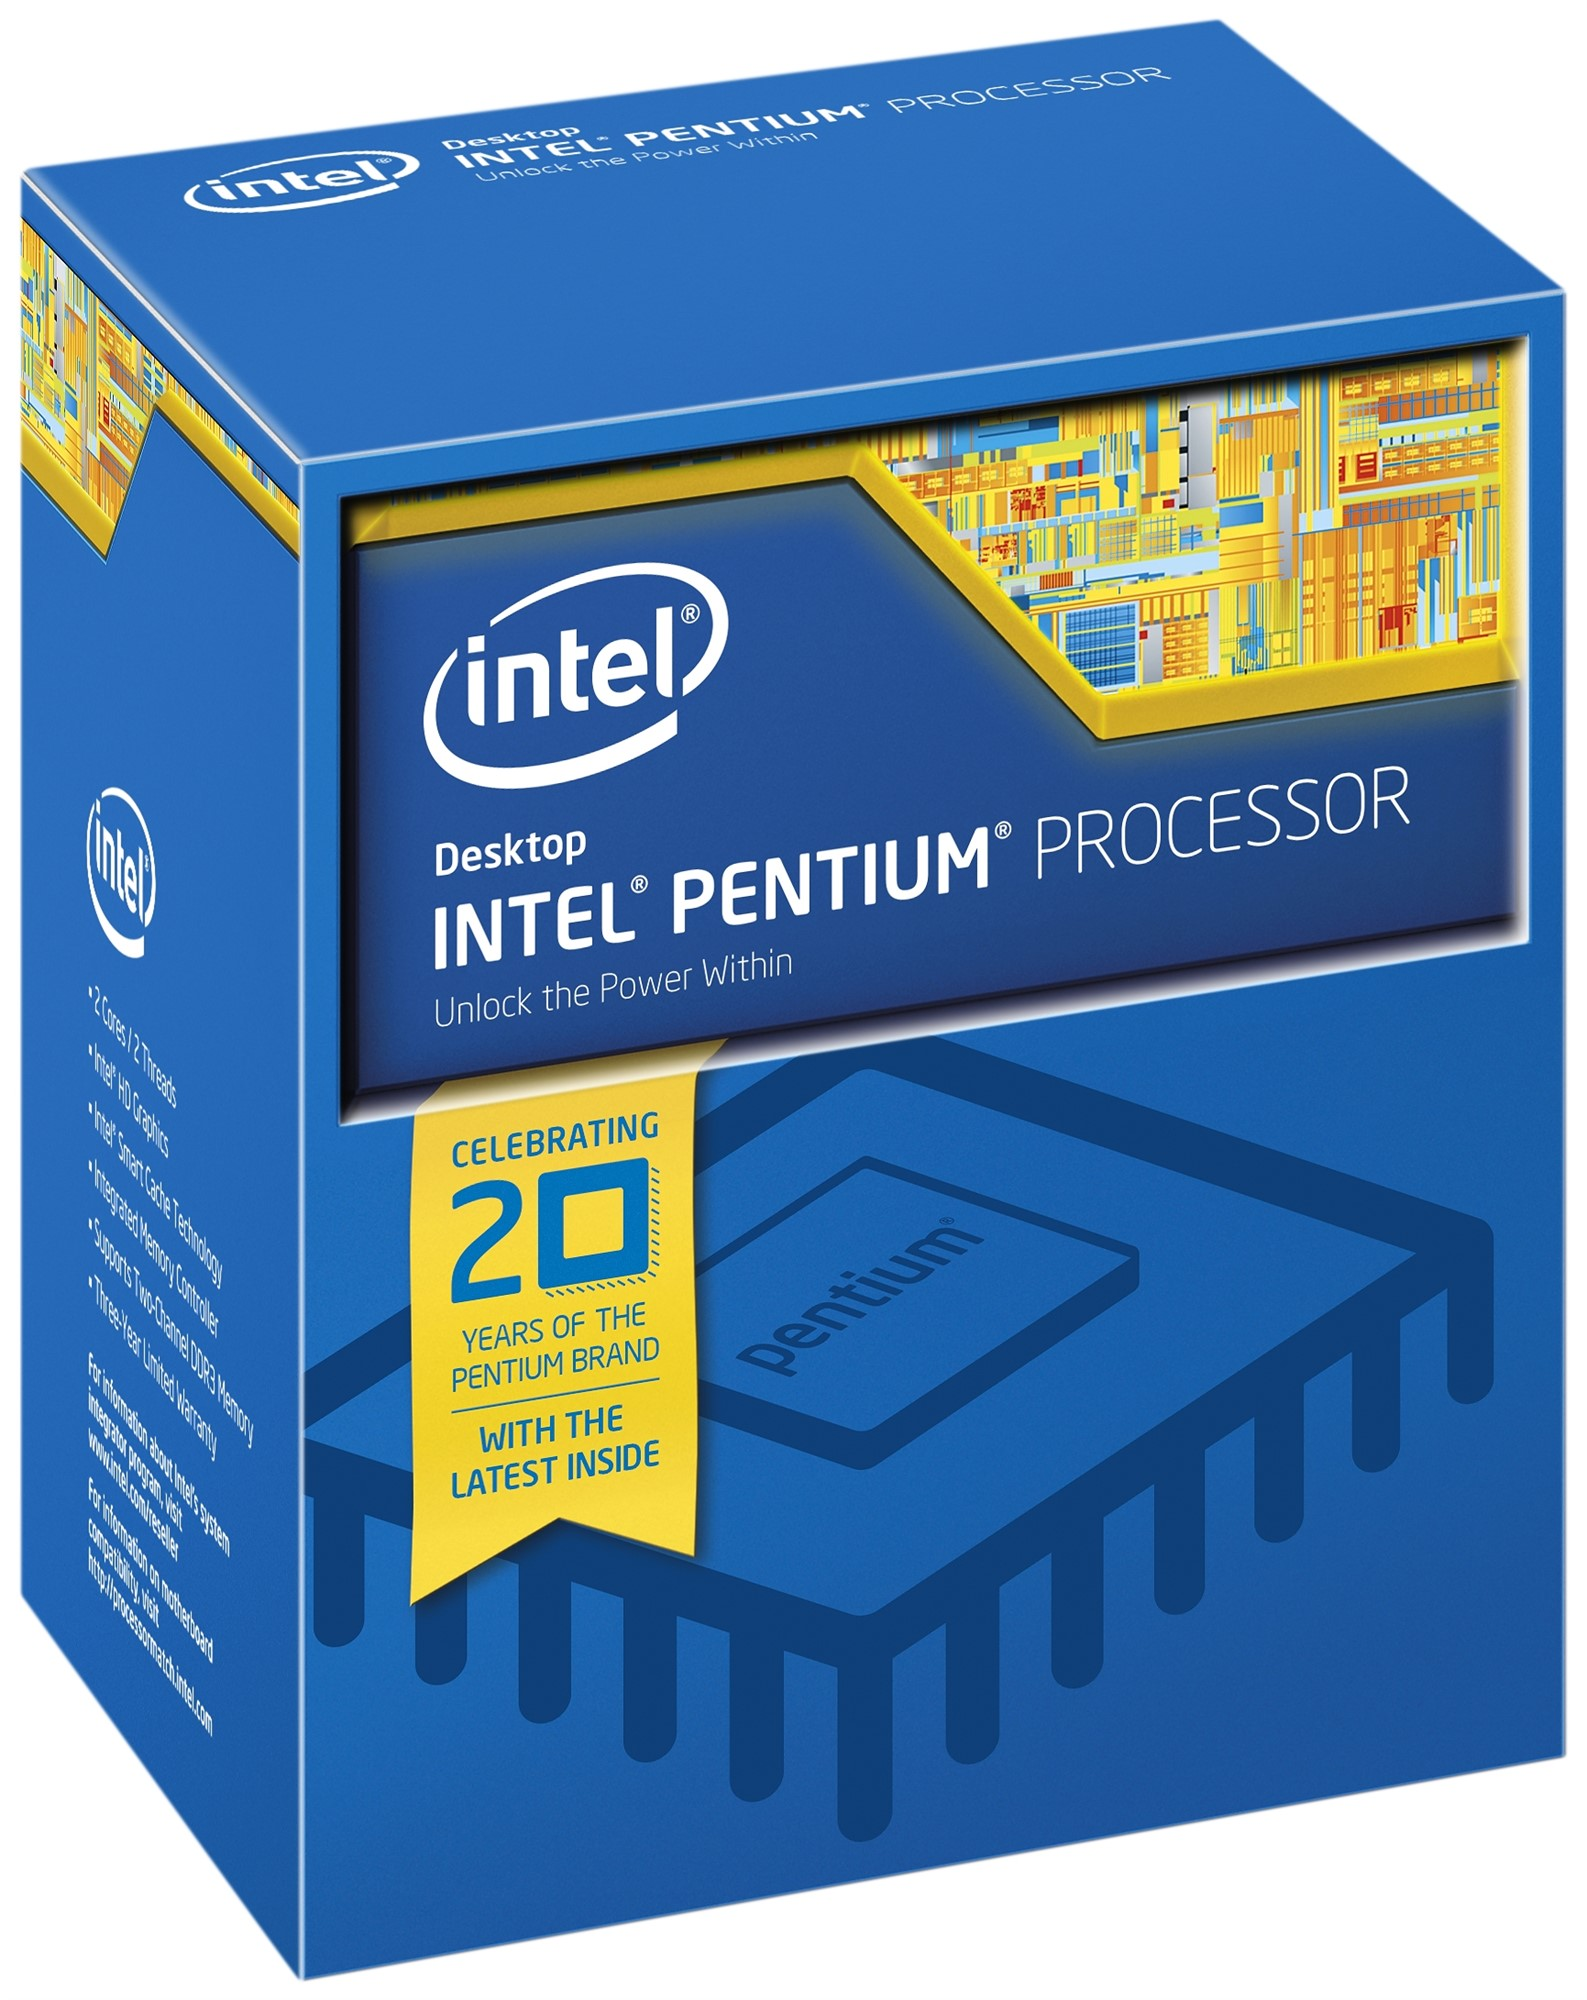 INTEL PENTIUM PROCESSOR G4400 (3M CACHE, 3.30 GHZ) 3.3GHZ 3MB SMART CACHE BOX